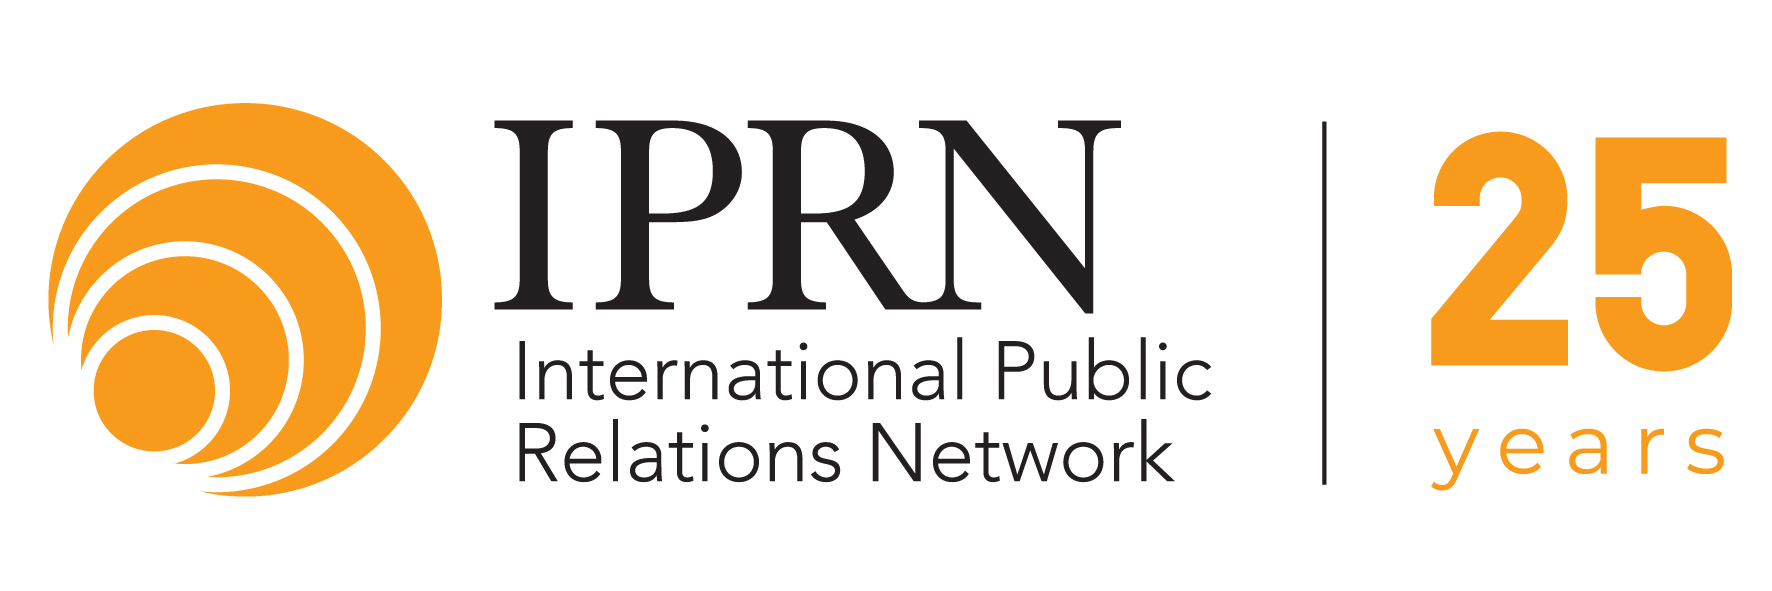 IPRN celebrates its 25th anniversary growing with more than 50 members